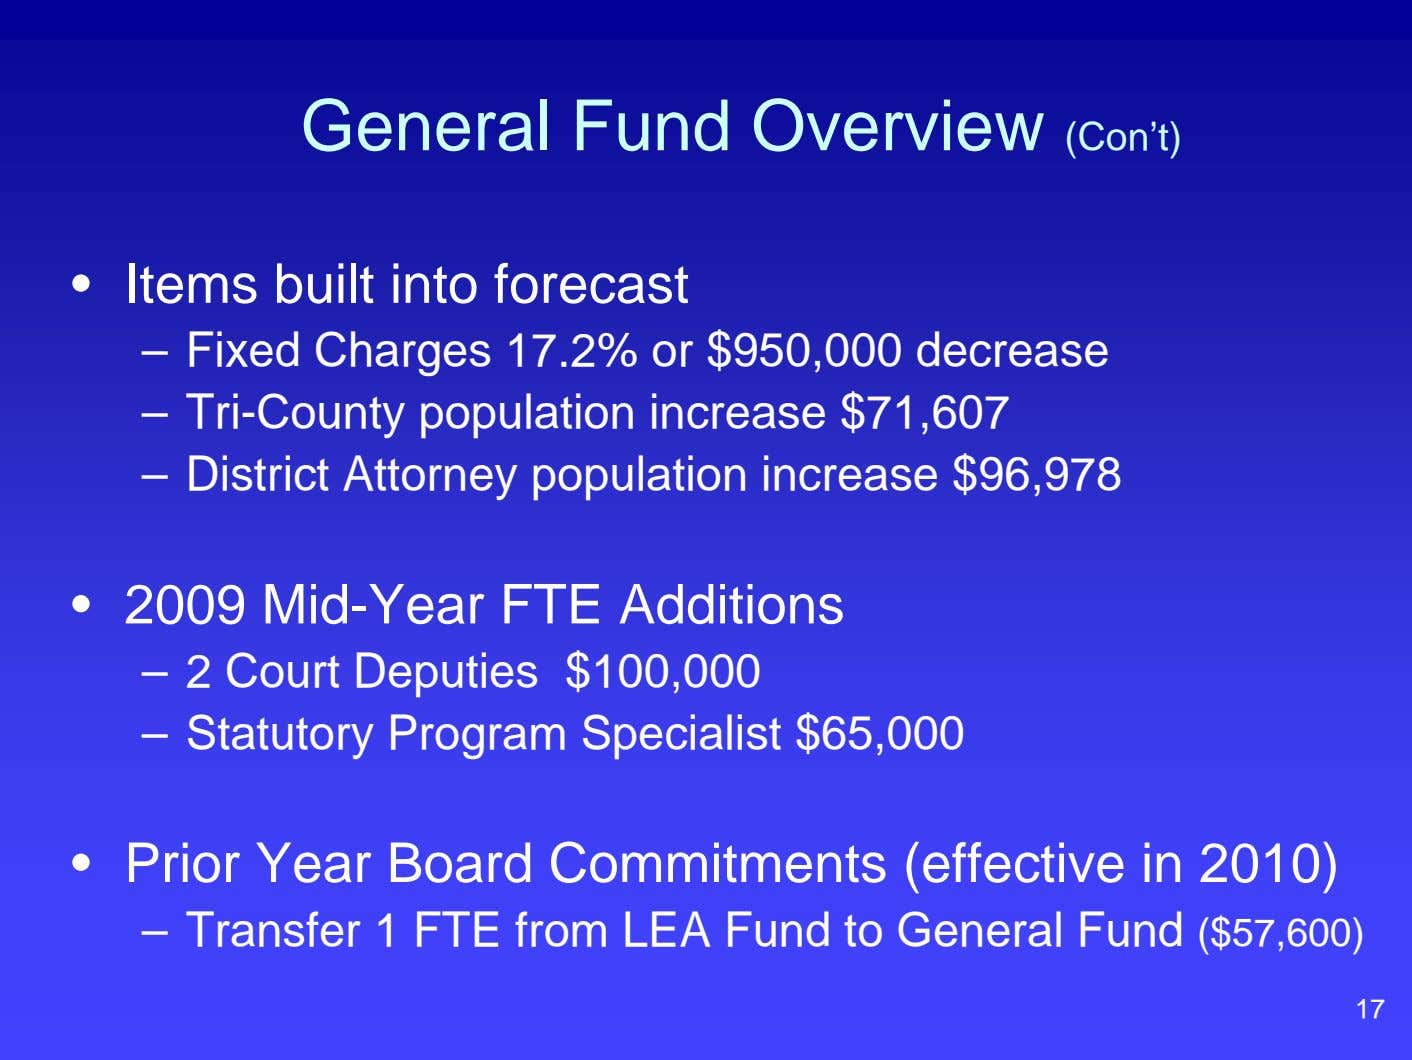 General Fund Overview (Con't) • Items built into forecast – Fixed Charges 17.2% or $950,000